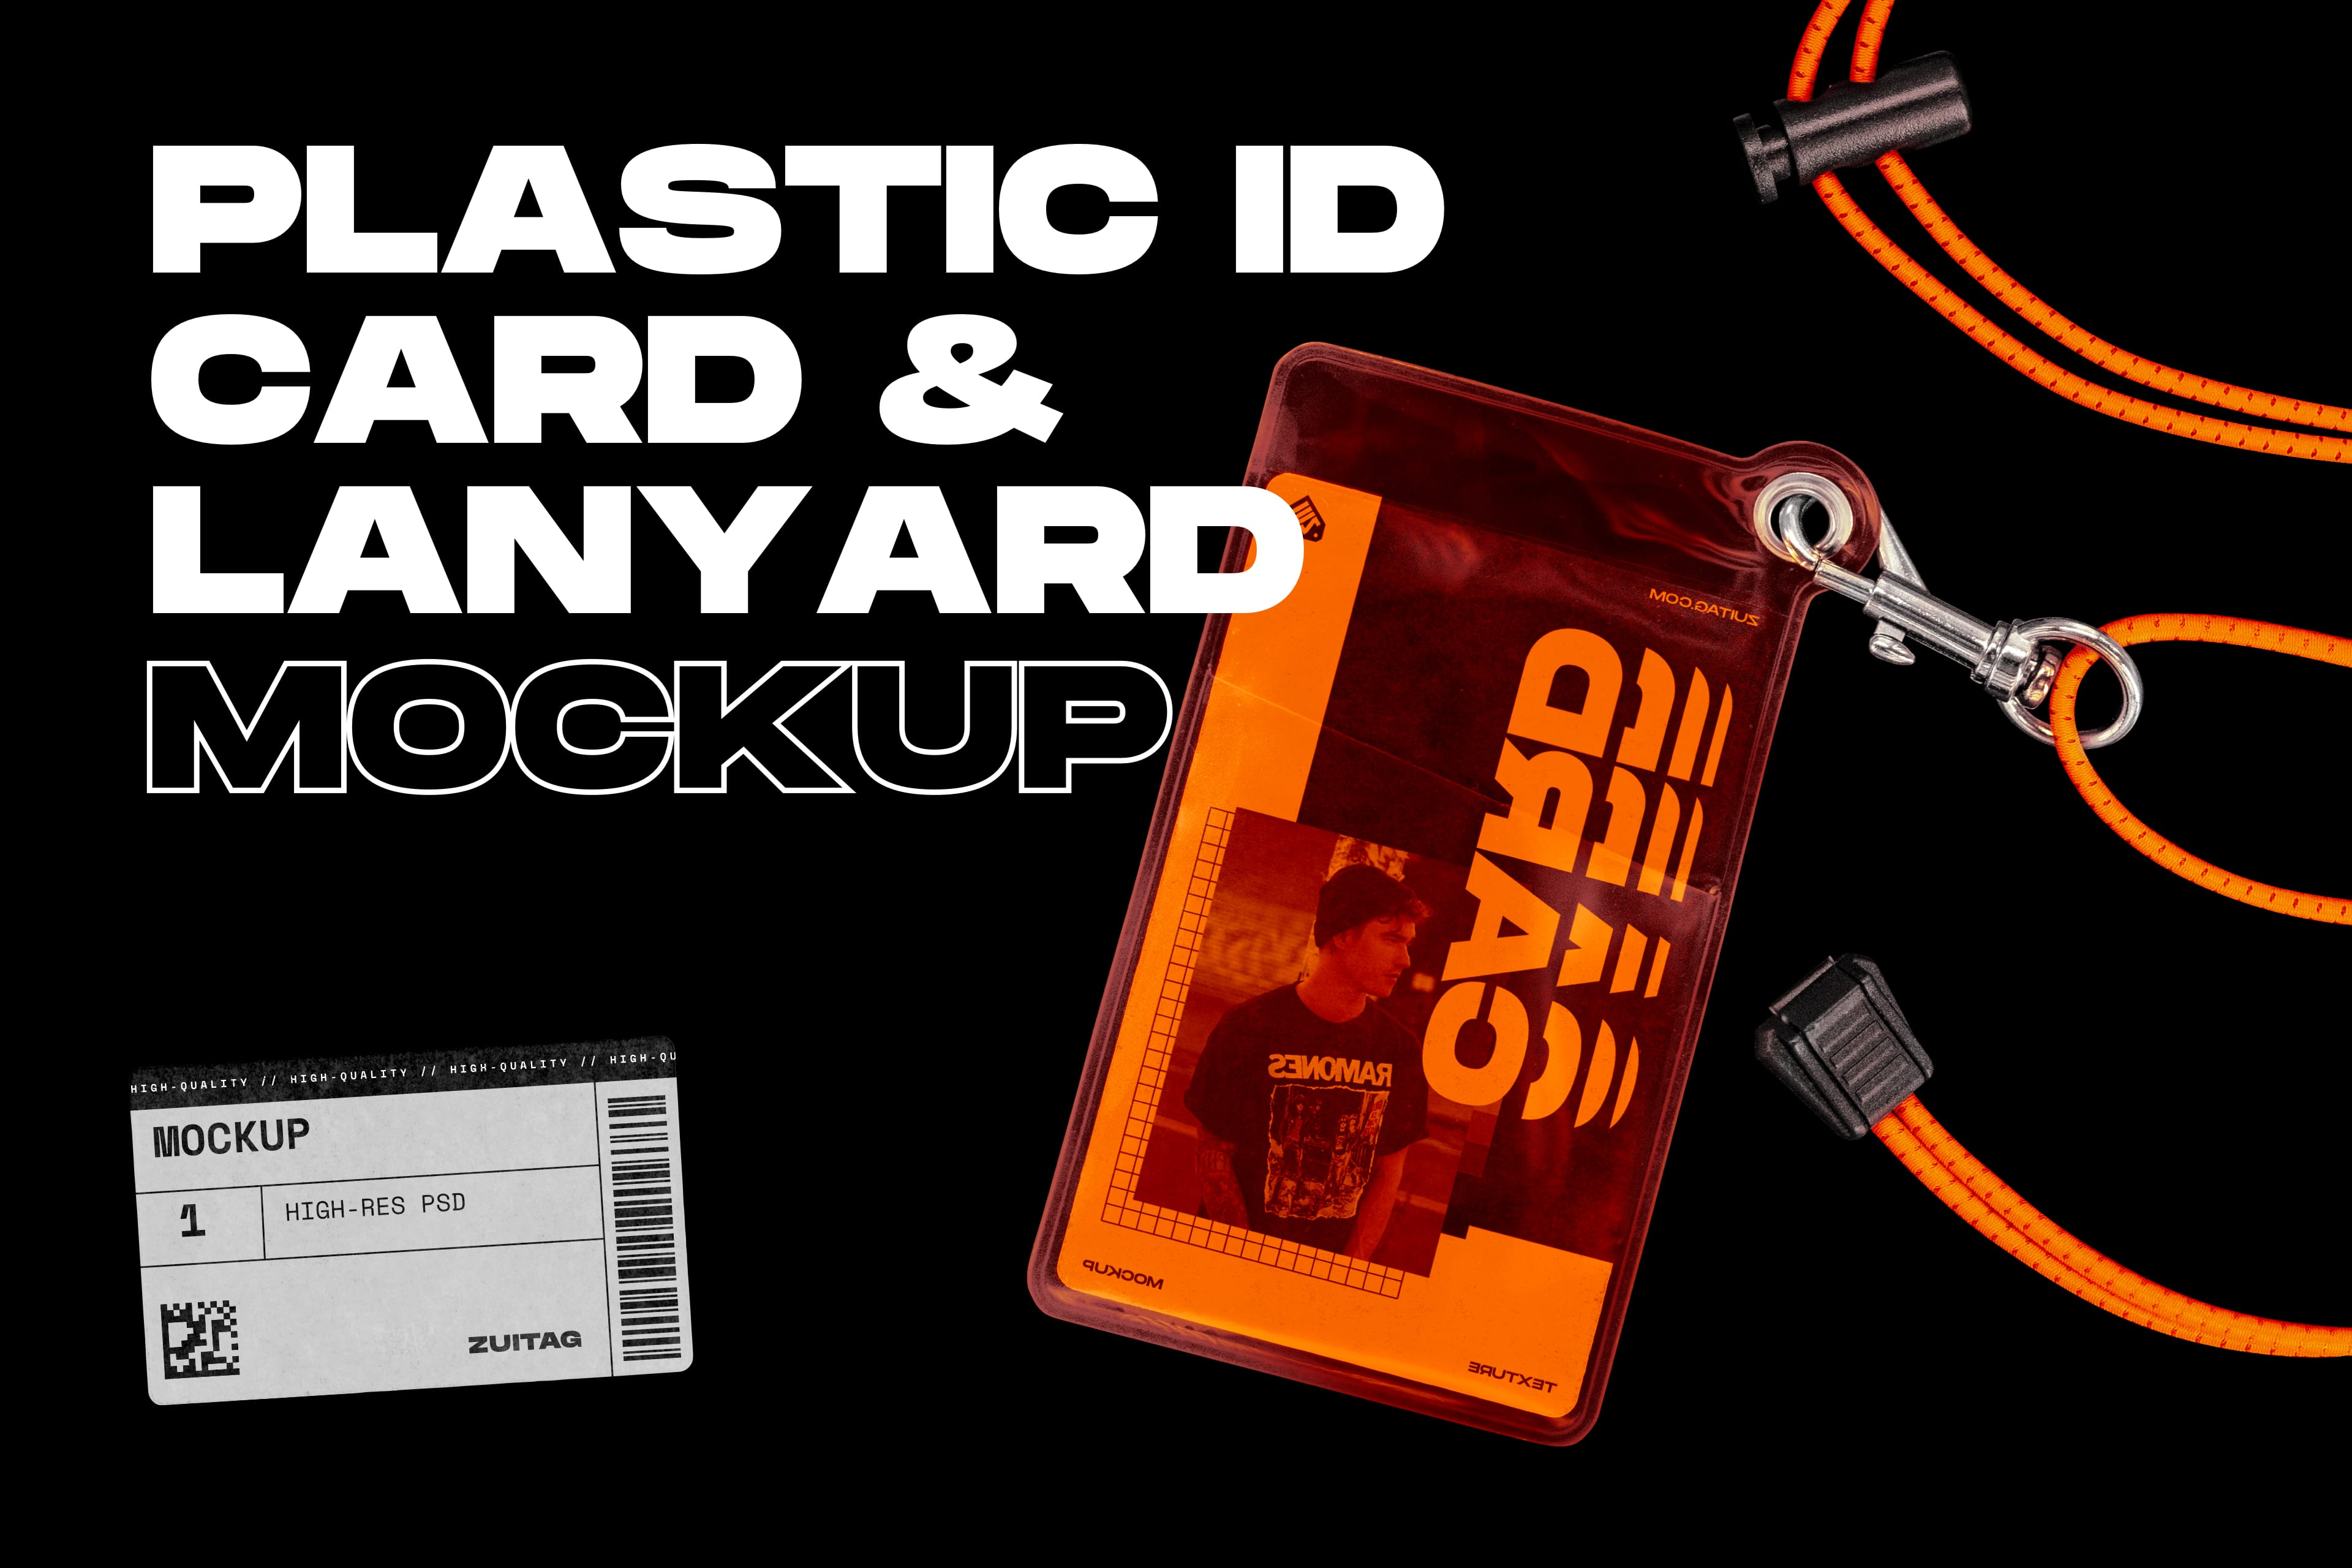 Plastic ID Card and Lanyard Mockup - Cover